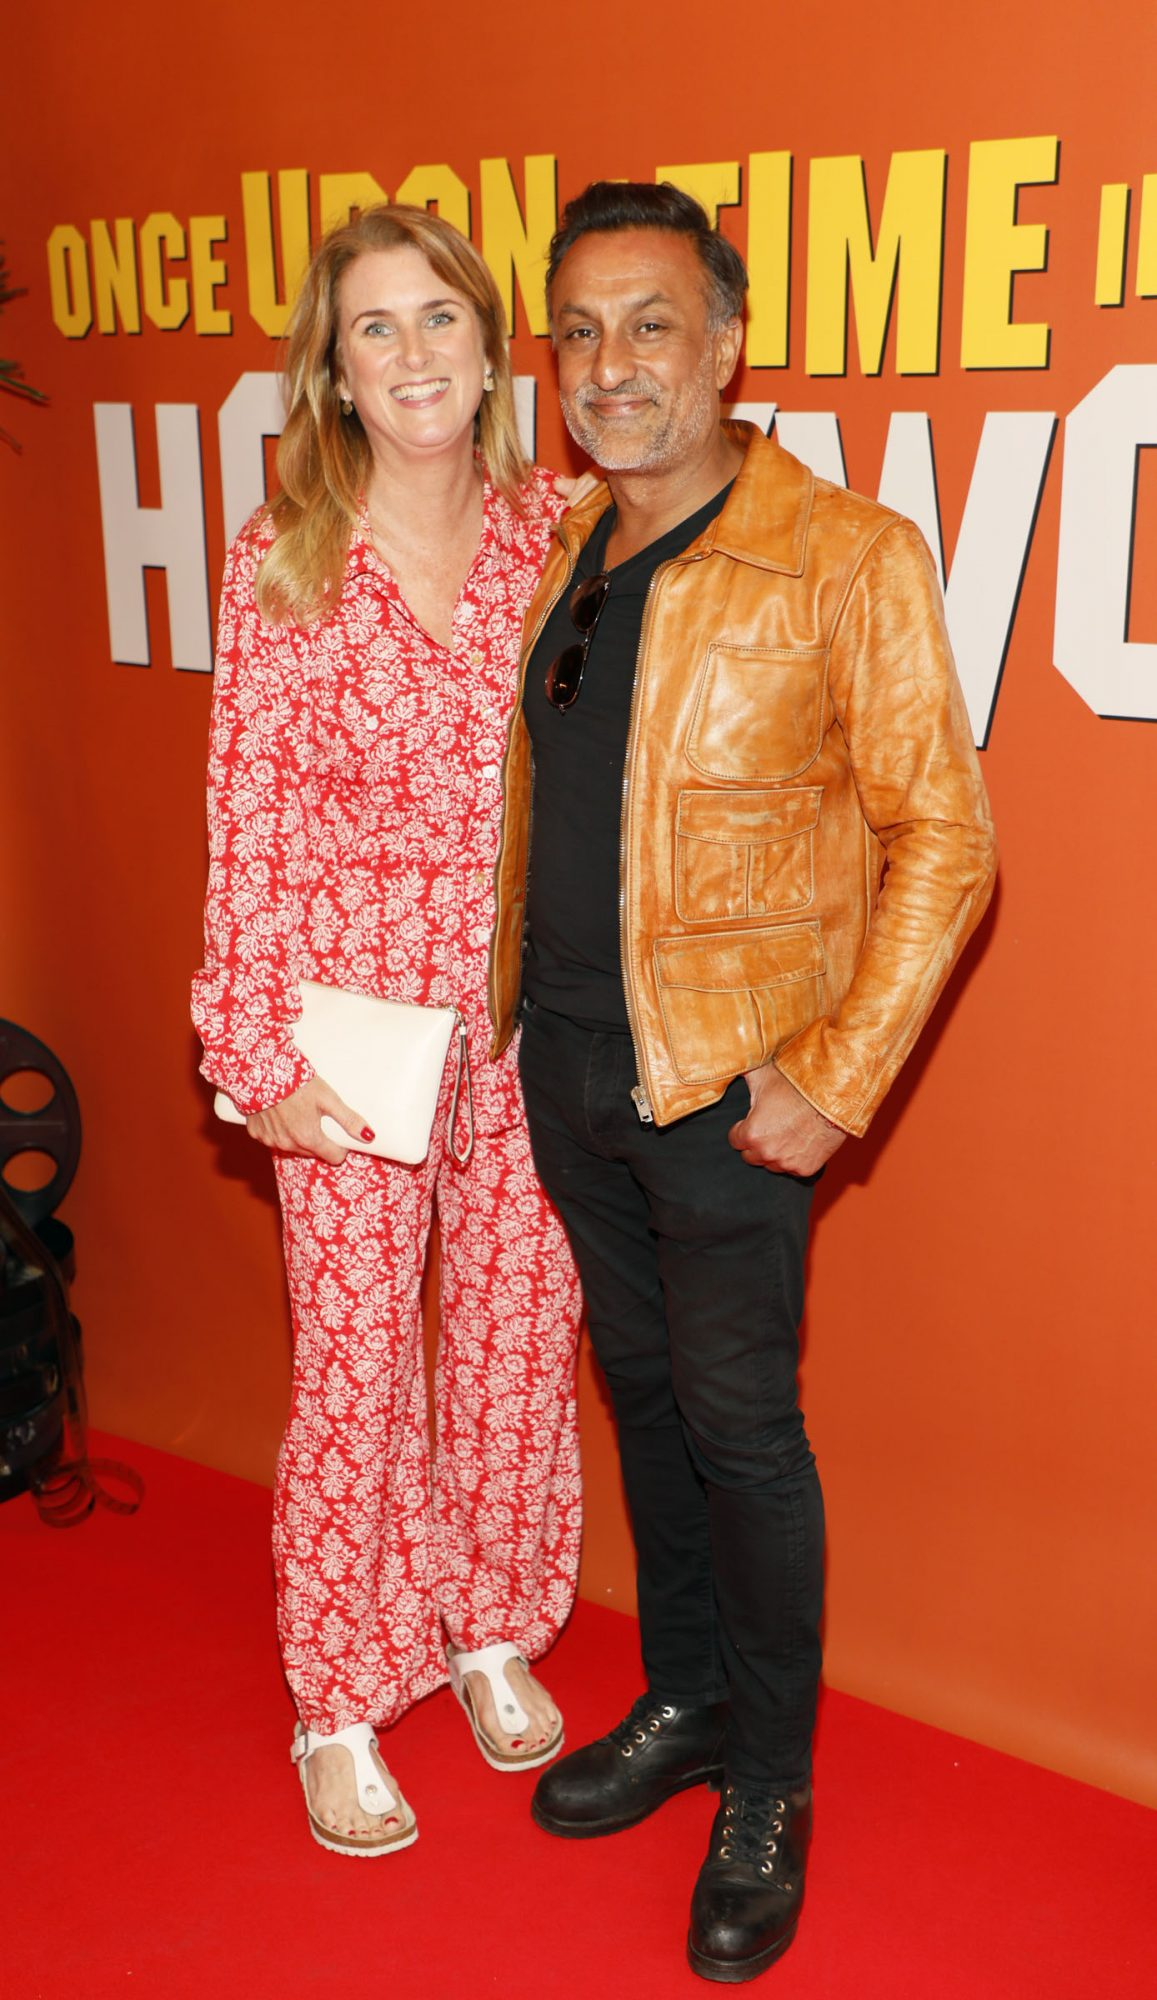 Audrey Sheils and Vik Kumar at the Multimedia Screening of Once Upon A Time In Hollywood at the Stella Theatre, Rathmines, in cinema August 14th. Photo: Kieran Harnett